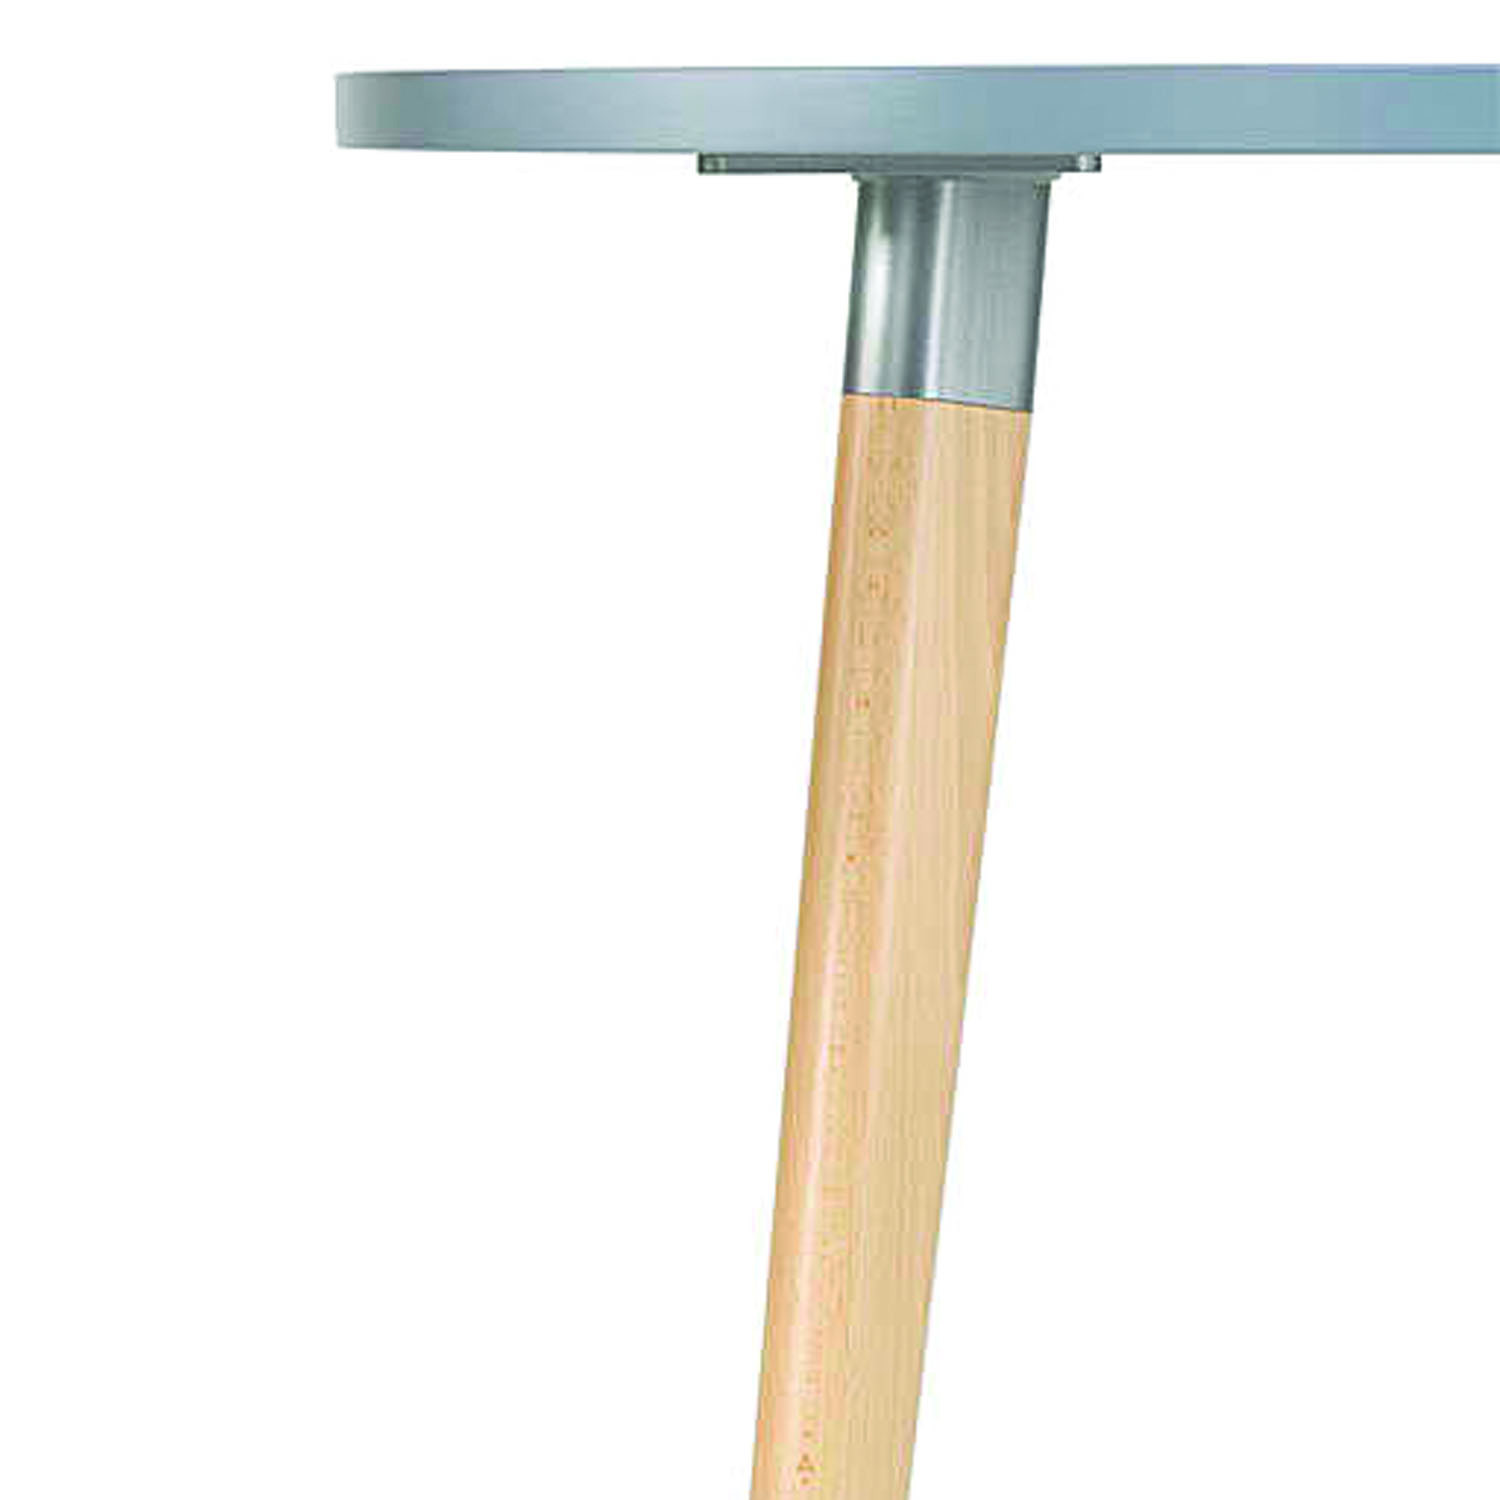 6100 San_Siro Table leg detail